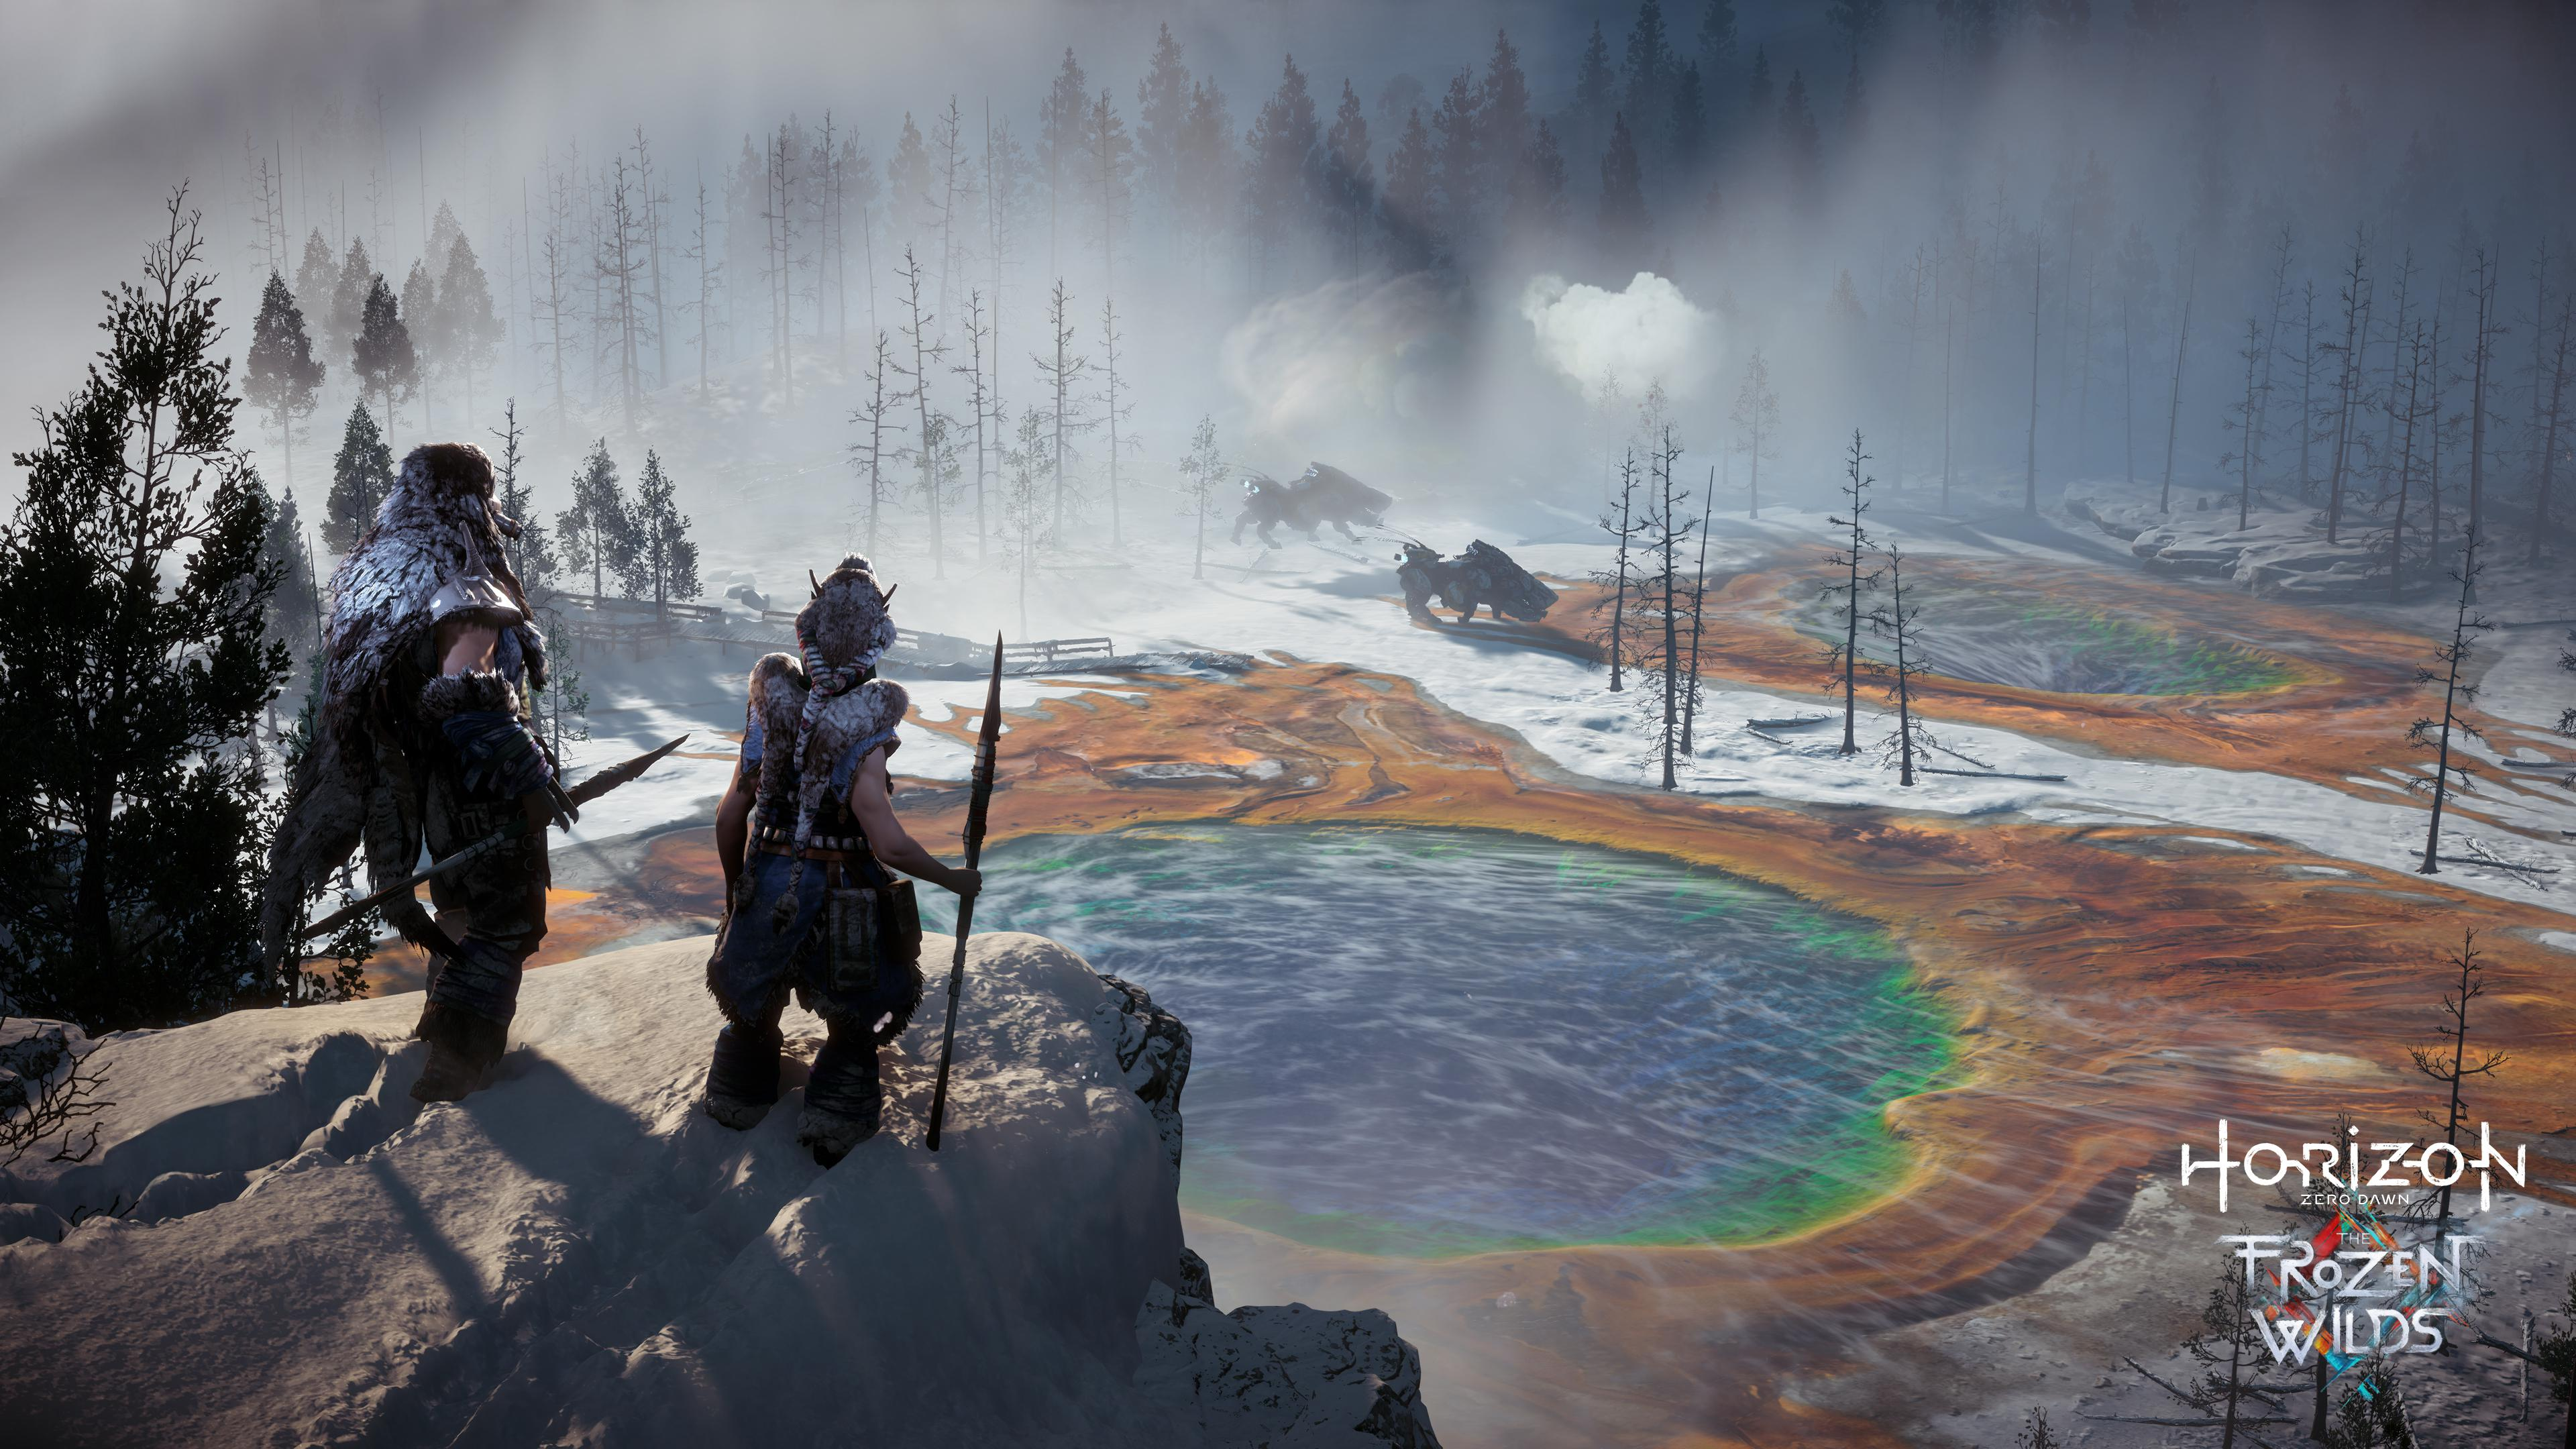 The Frozen Wilds DLC adds an even more hostile environment to the game